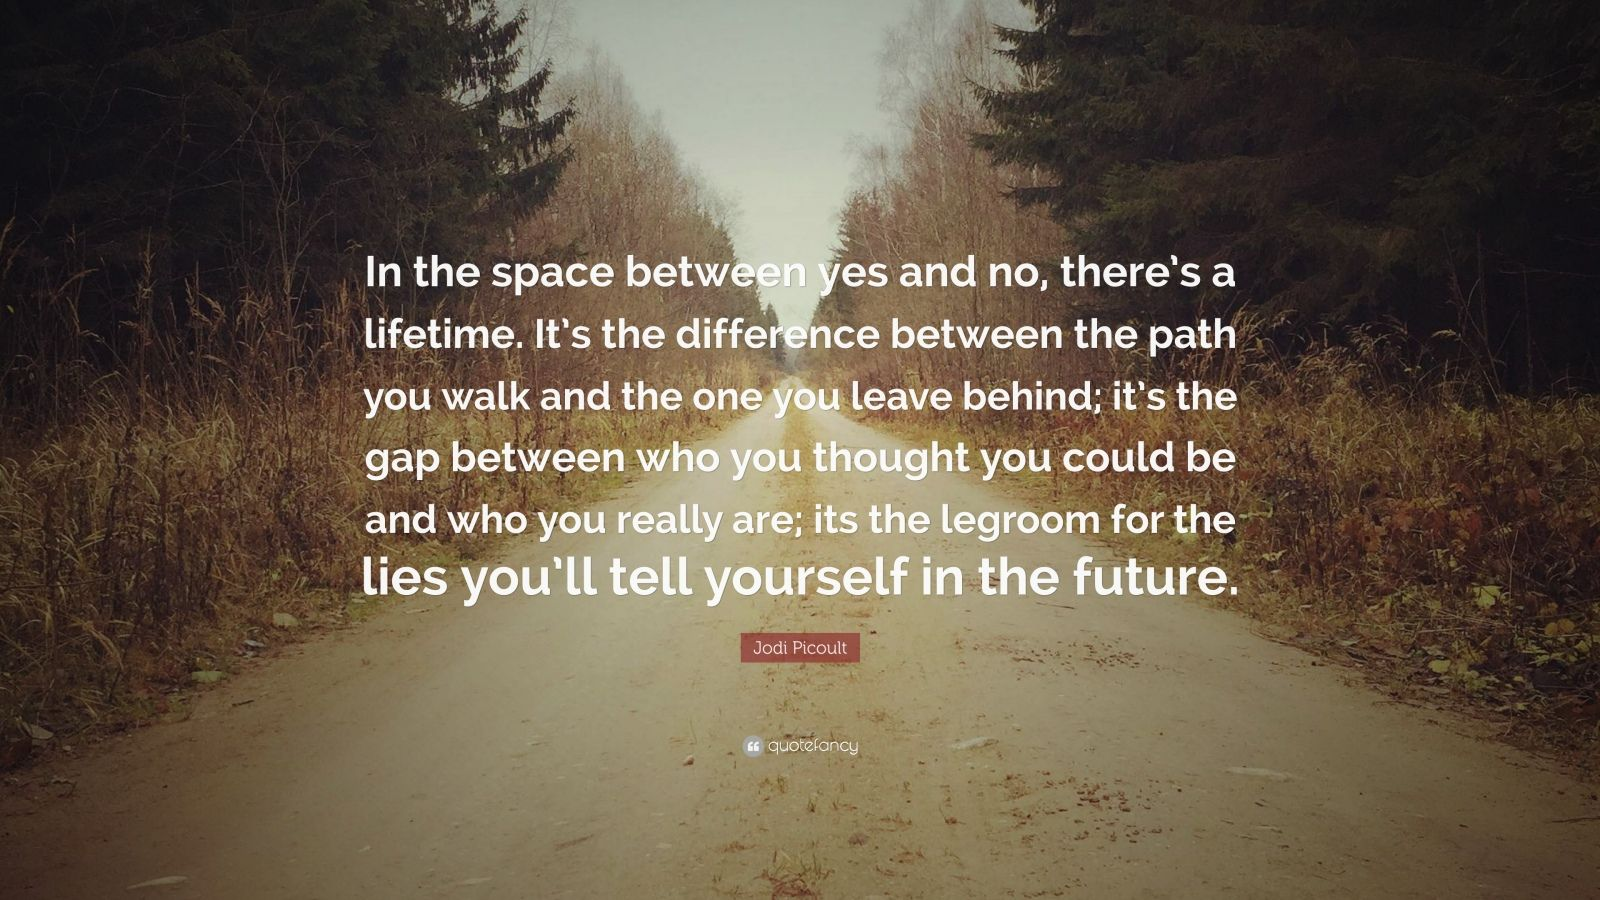 "Jodi Picoult Quote: ""In the space between yes and no, there's a lifetime. It's the difference between the path you walk and the one you leave behind; it's the gap between who you thought you could be and who you really are; its the legroom for the lies you'll tell yourself in the future."""